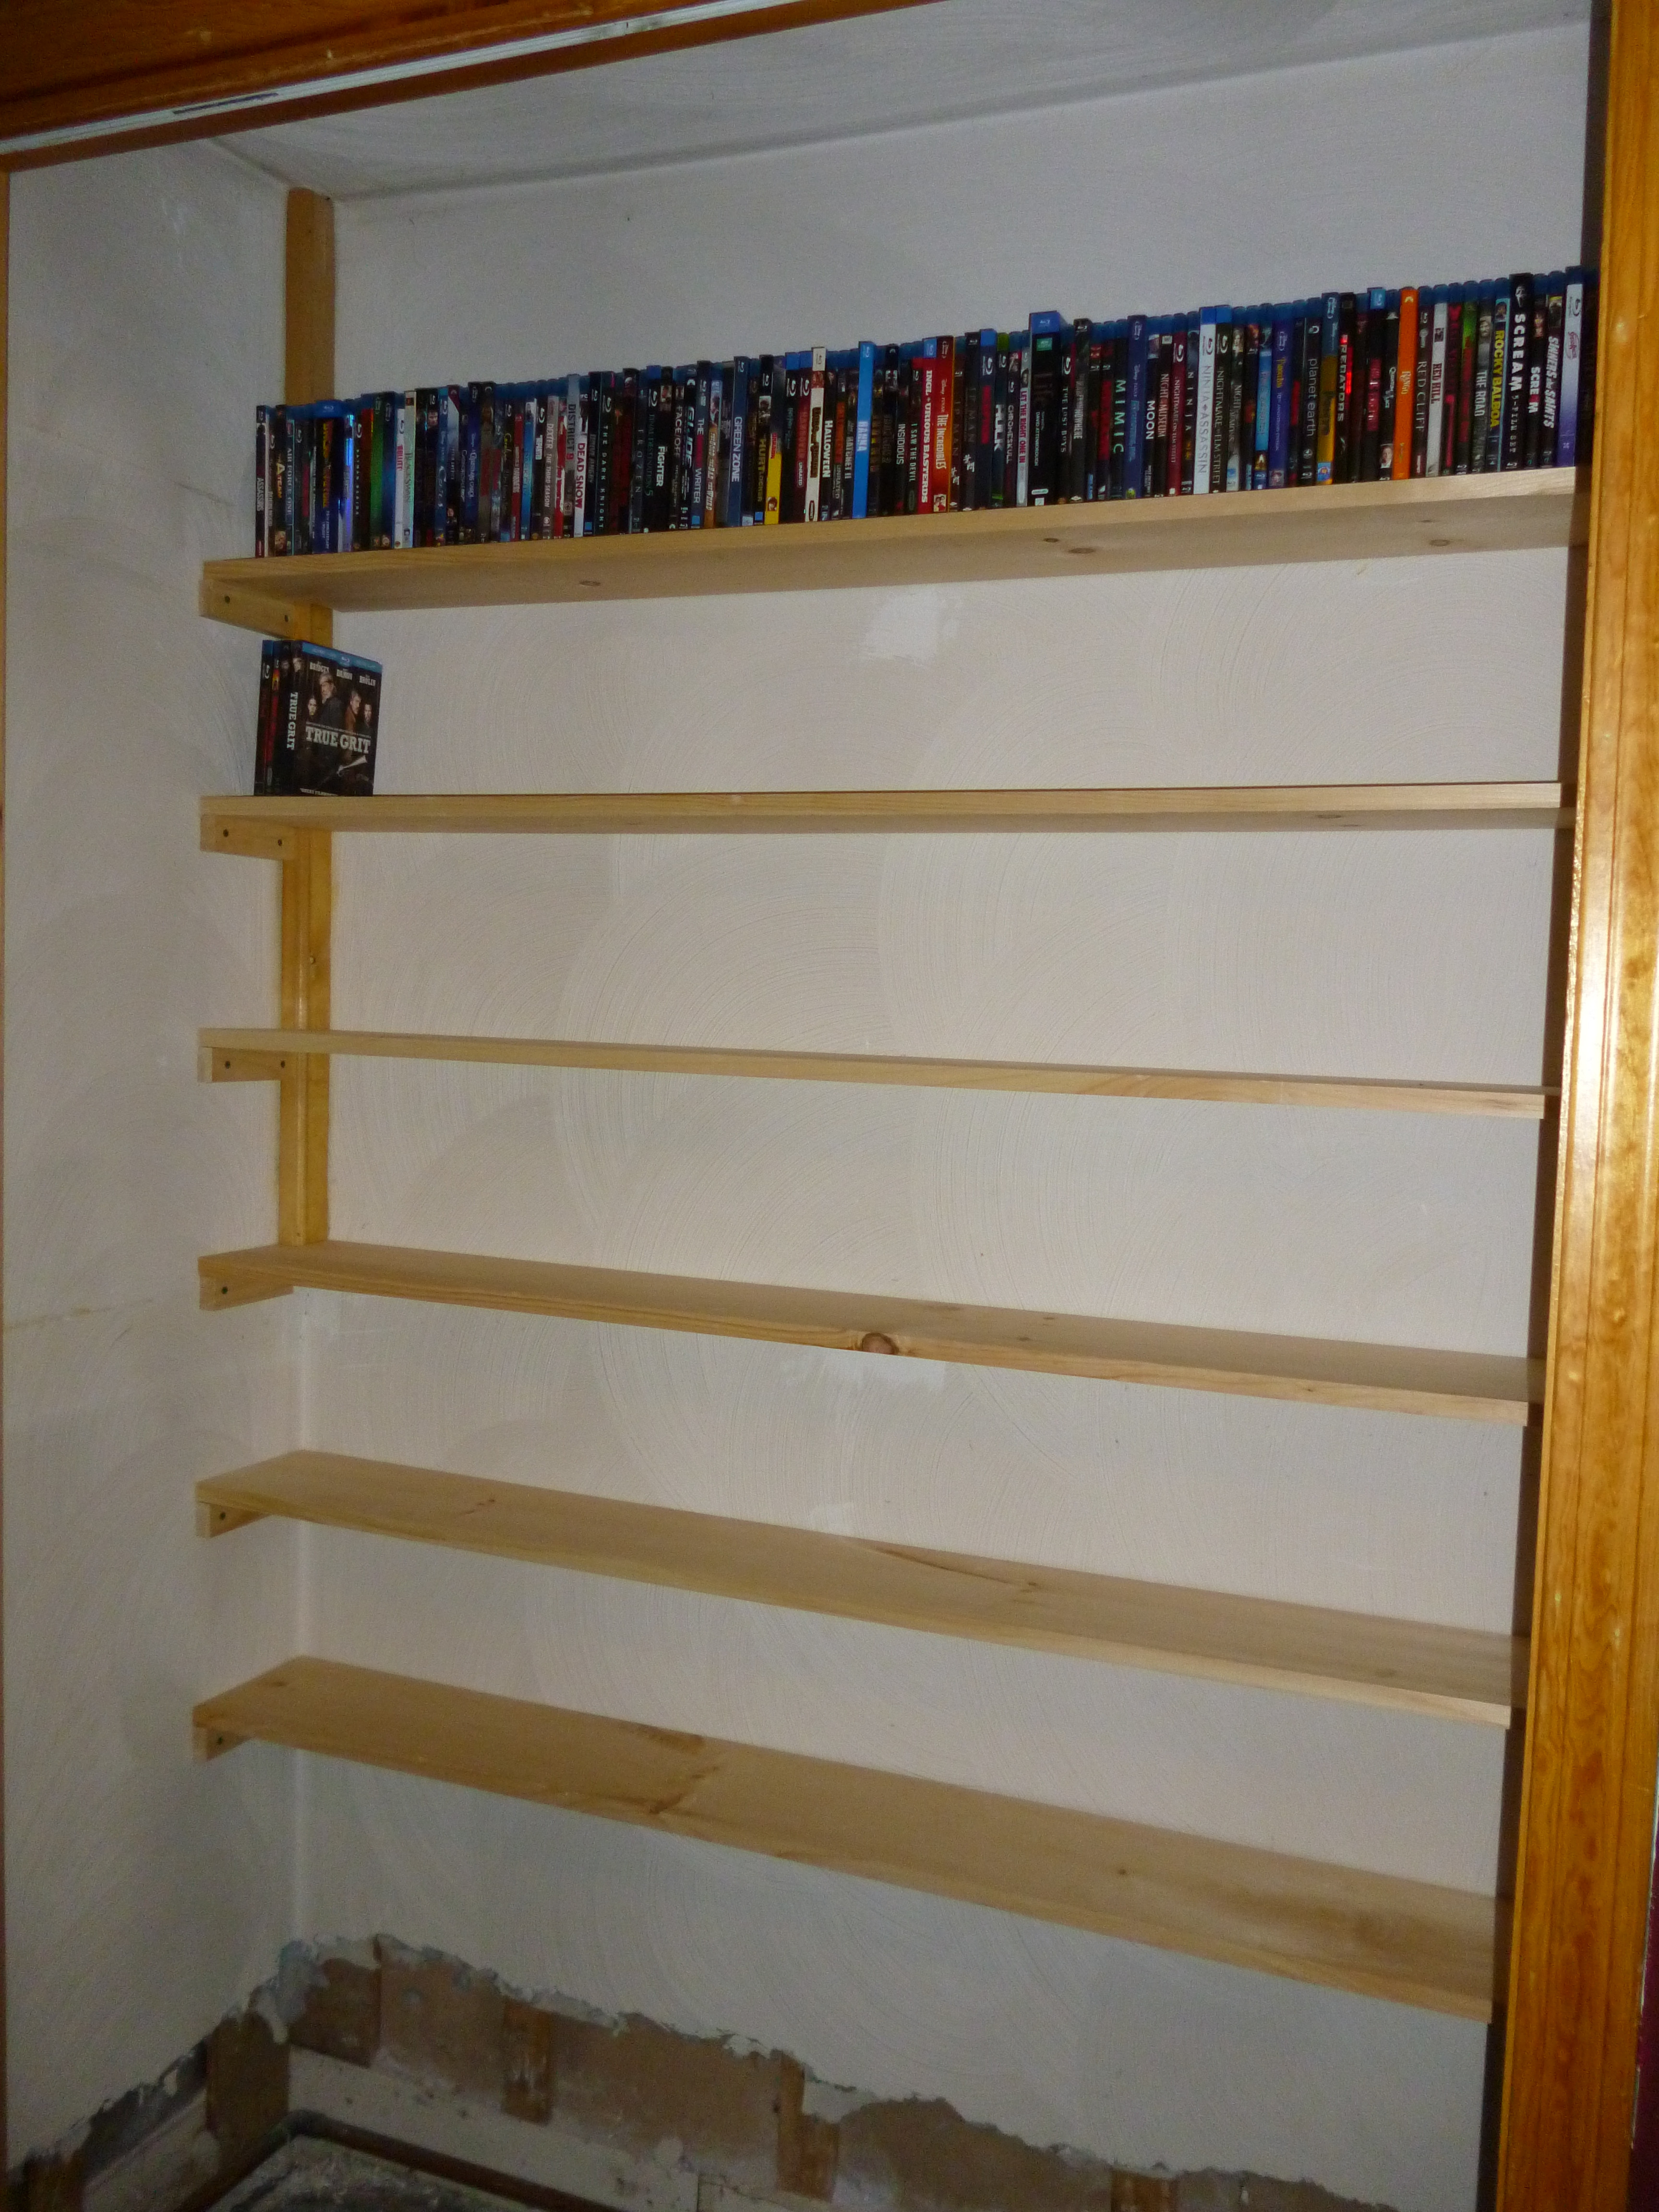 Best ideas about DIY Dvd Rack . Save or Pin Easy dvd rack plans Plans DIY How to Make – wiry32ibw Now.